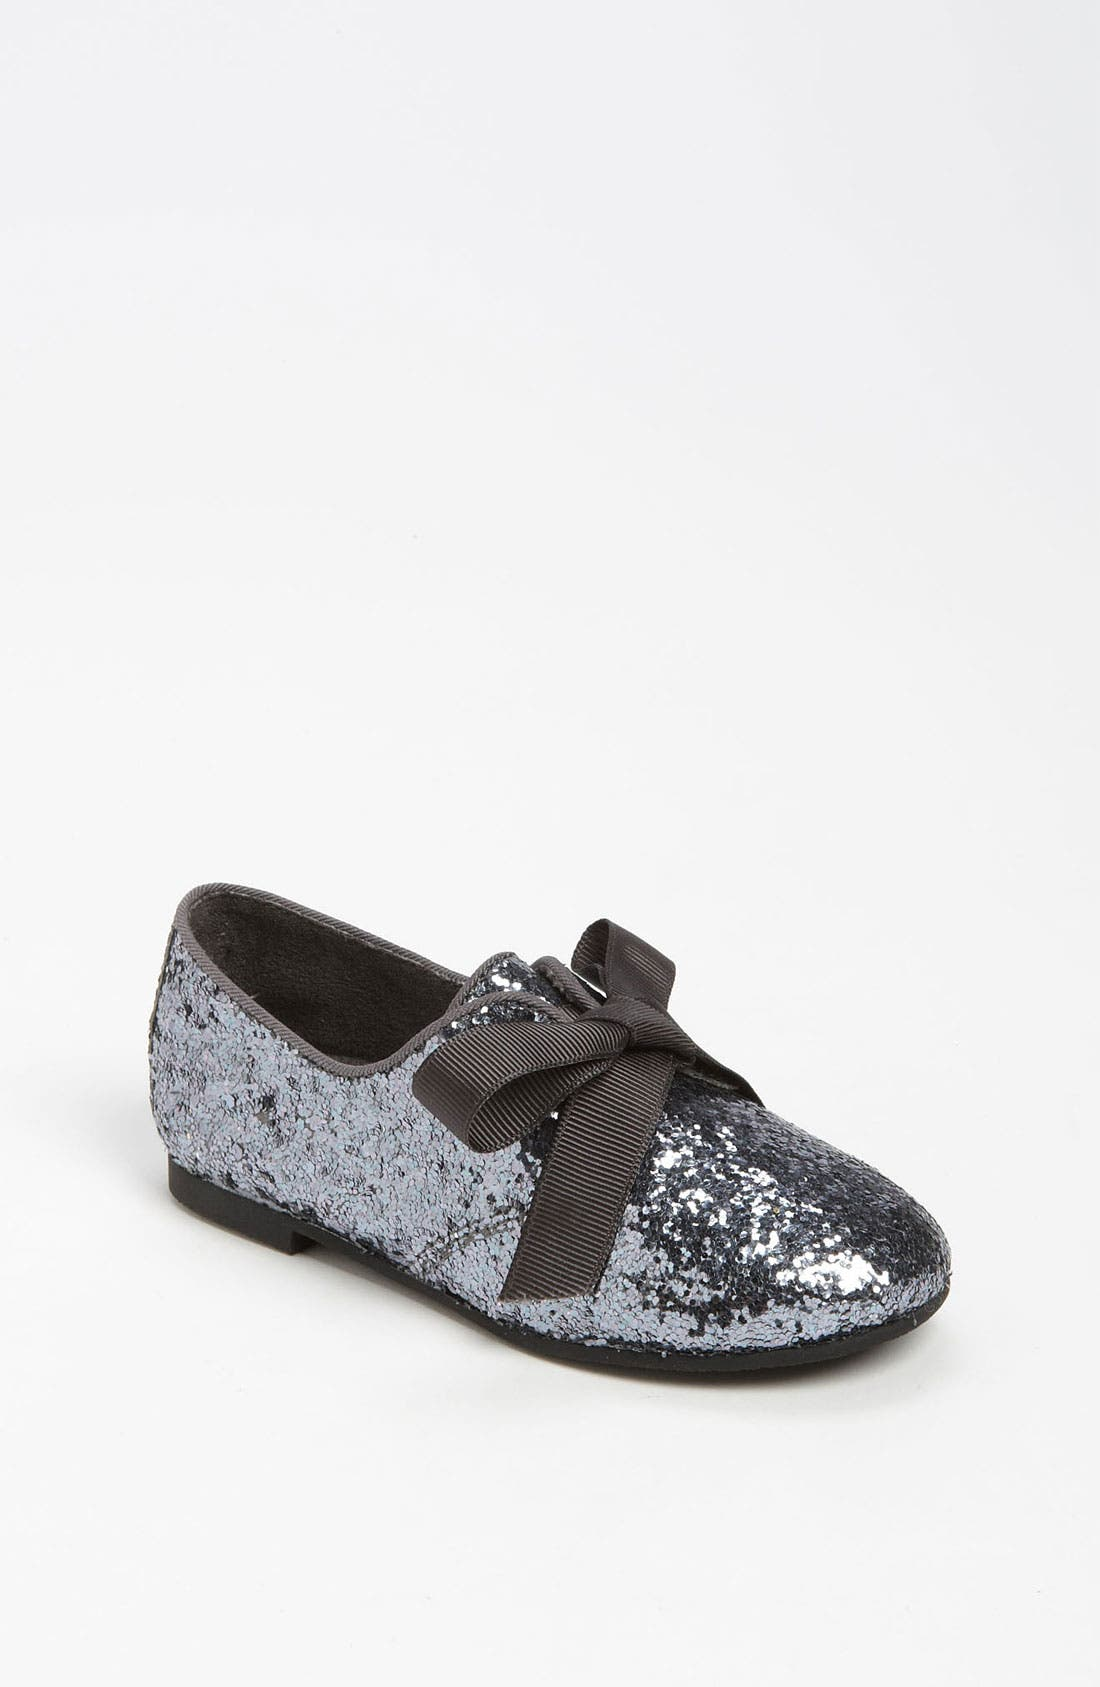 Alternate Image 1 Selected - Stuart Weitzman 'Glitzy' Oxford